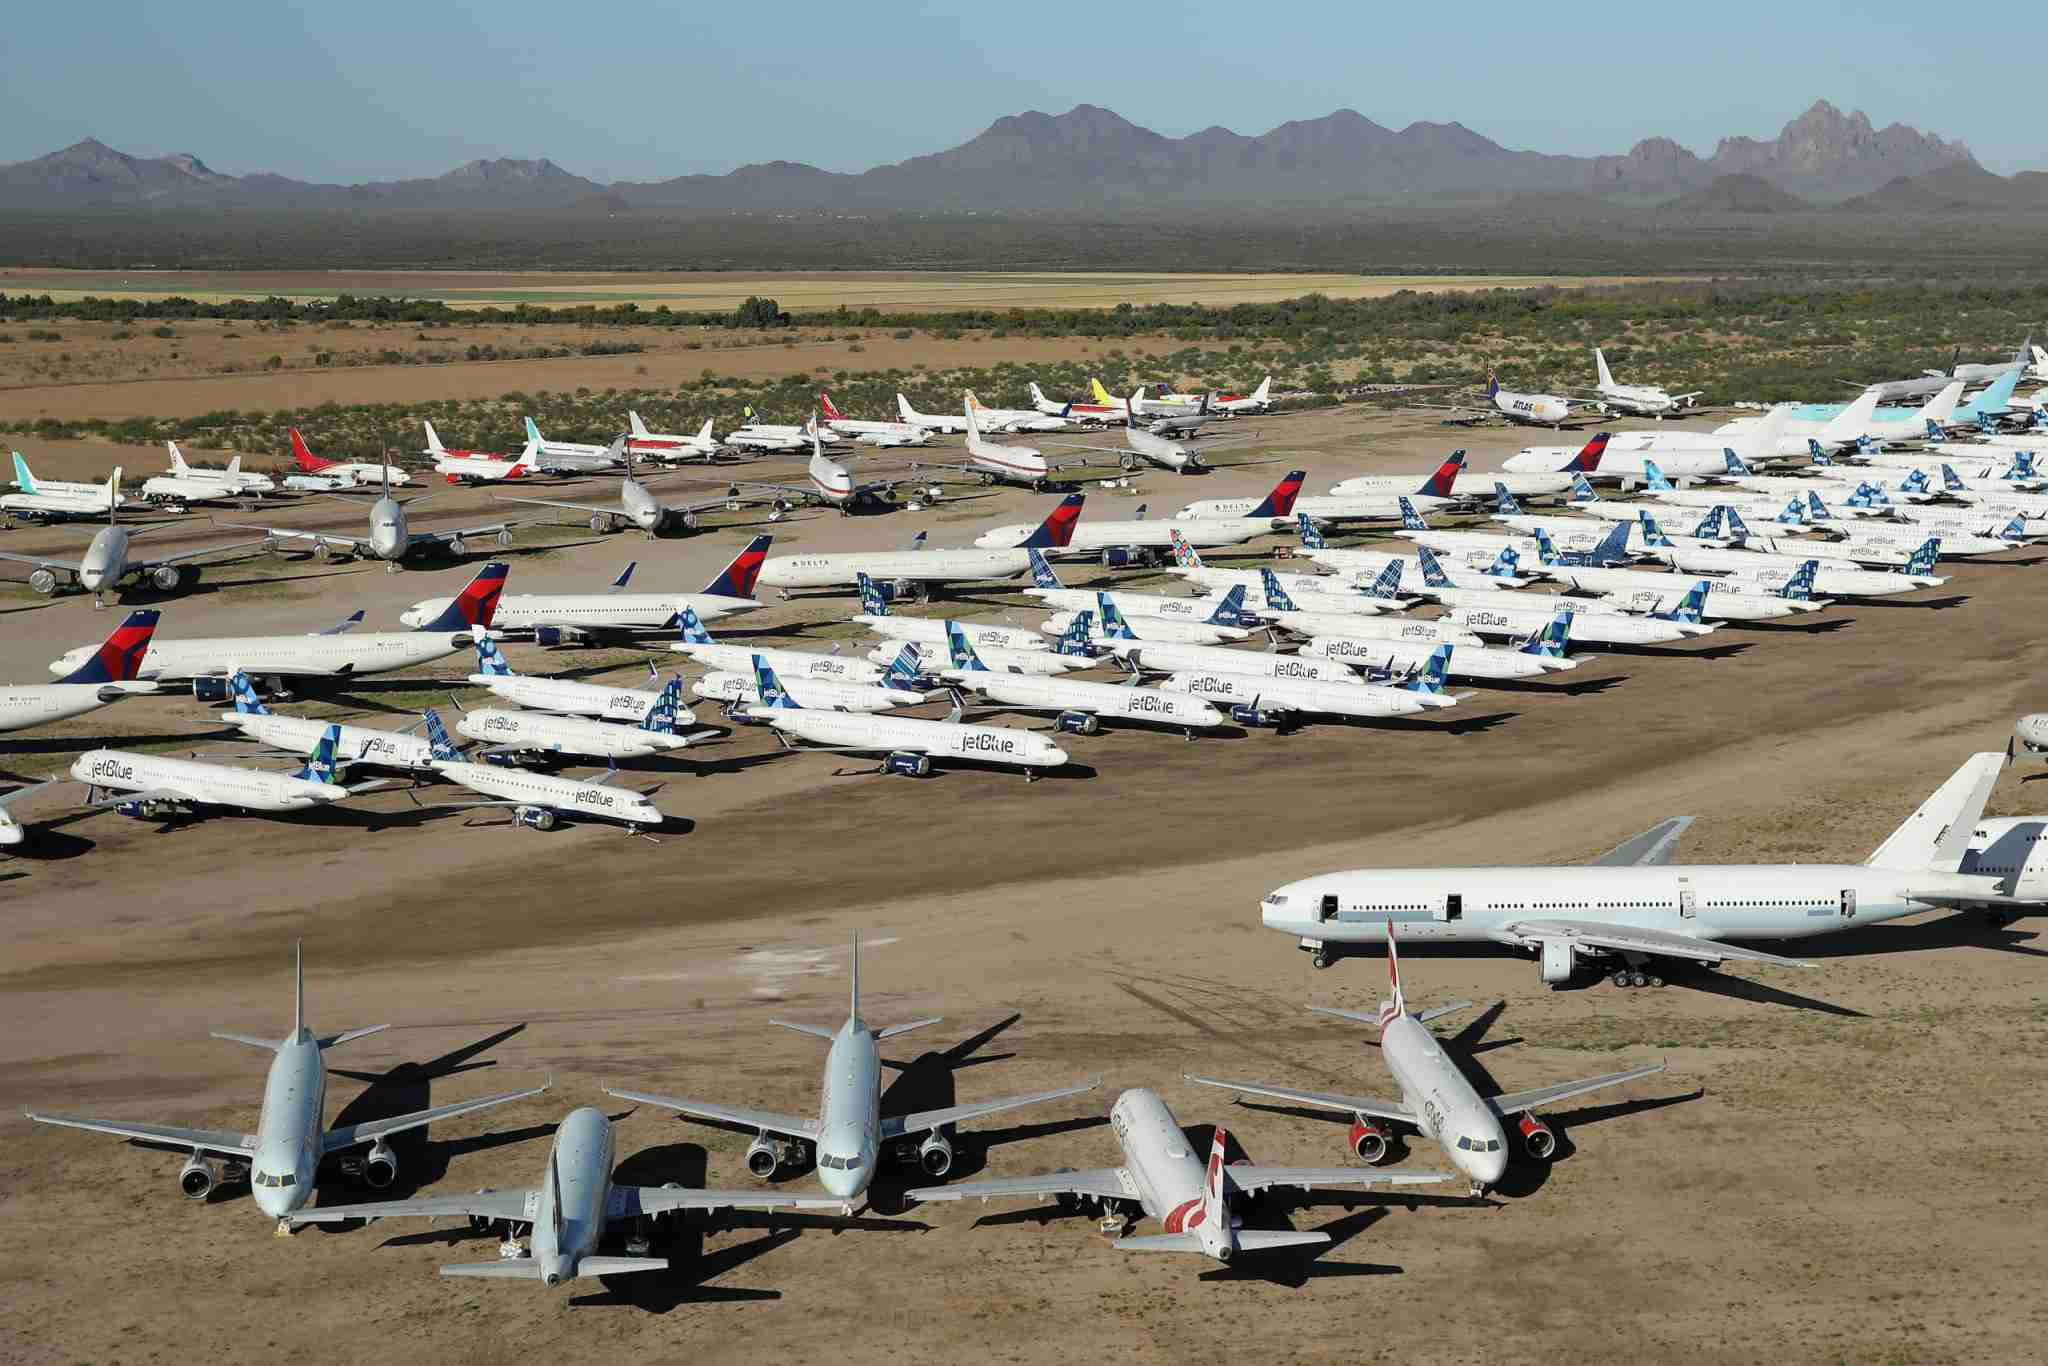 MARANA, ARIZONA - MAY 16: Decommissioned and suspended commercial aircrafts are seen stored in Pinal Airpark on May 16, 2020 in Marana, Arizona. Pinal Airpark is the largest commercial aircraft storage facility in the world, currently holding increased numbers of aircraft in response to the coronavirus COVID-19 pandemic. (Photo by Christian Petersen/Getty Images)